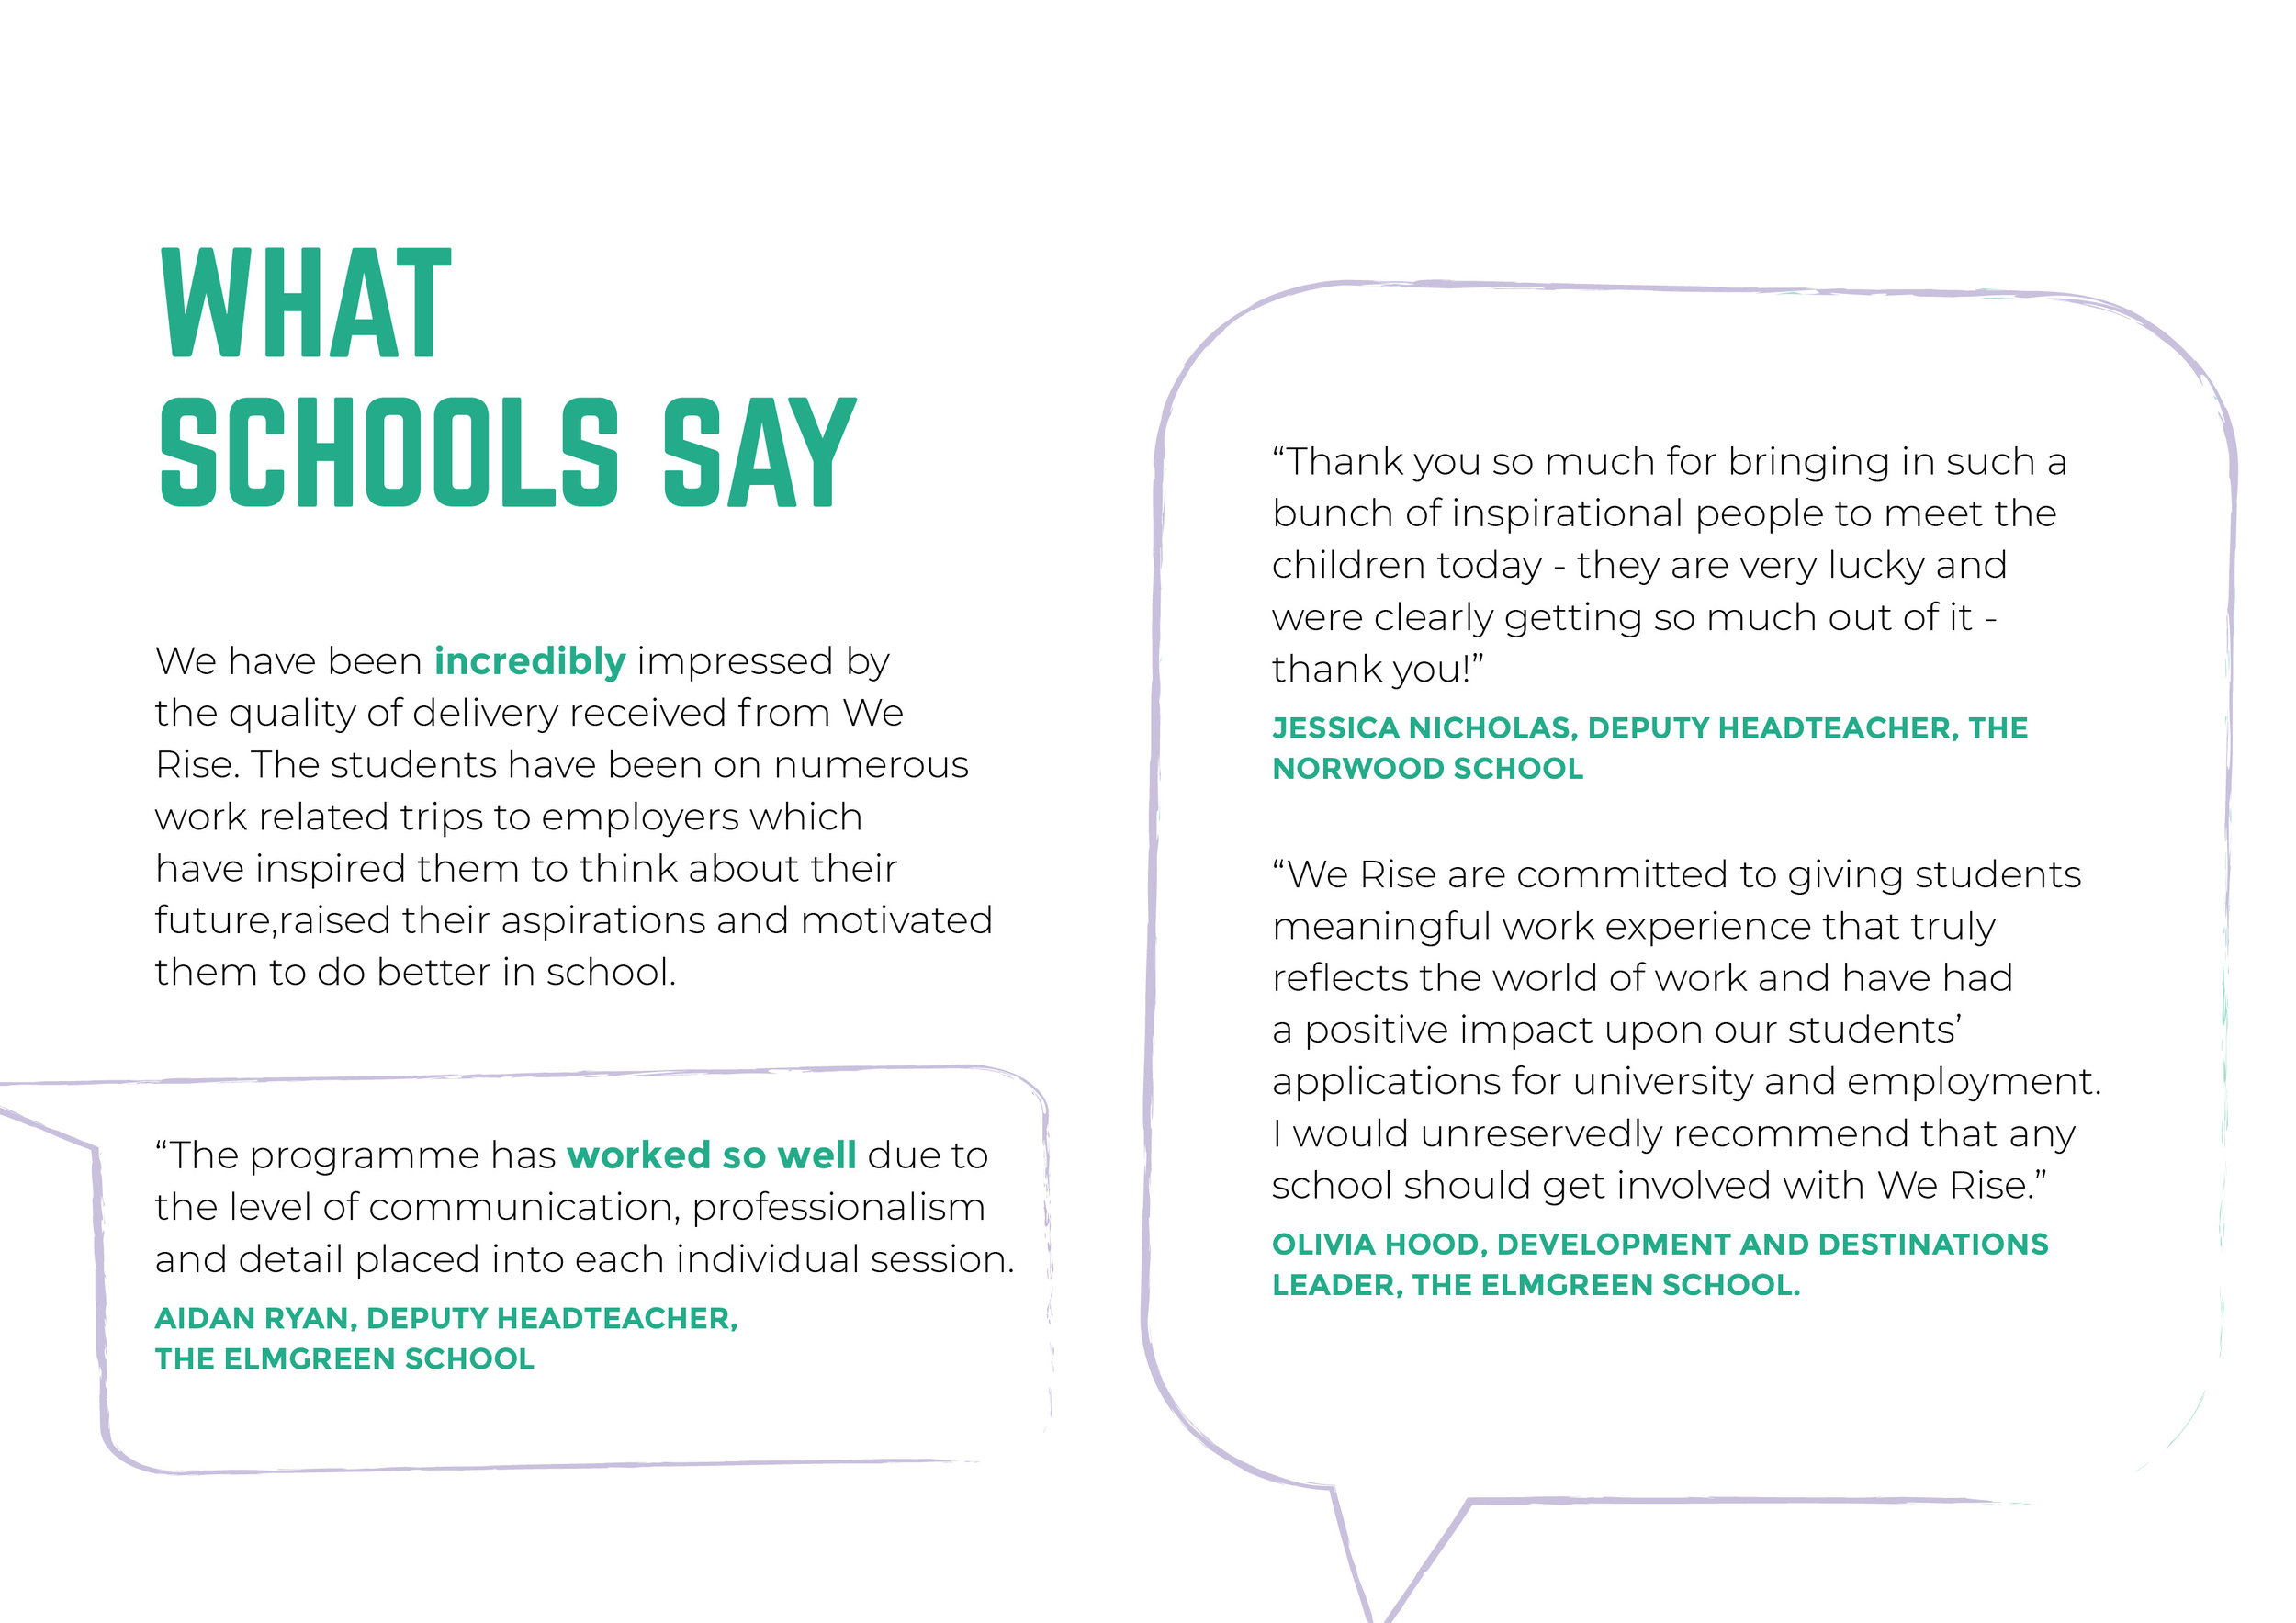 We Rise Brixton - What school say information image